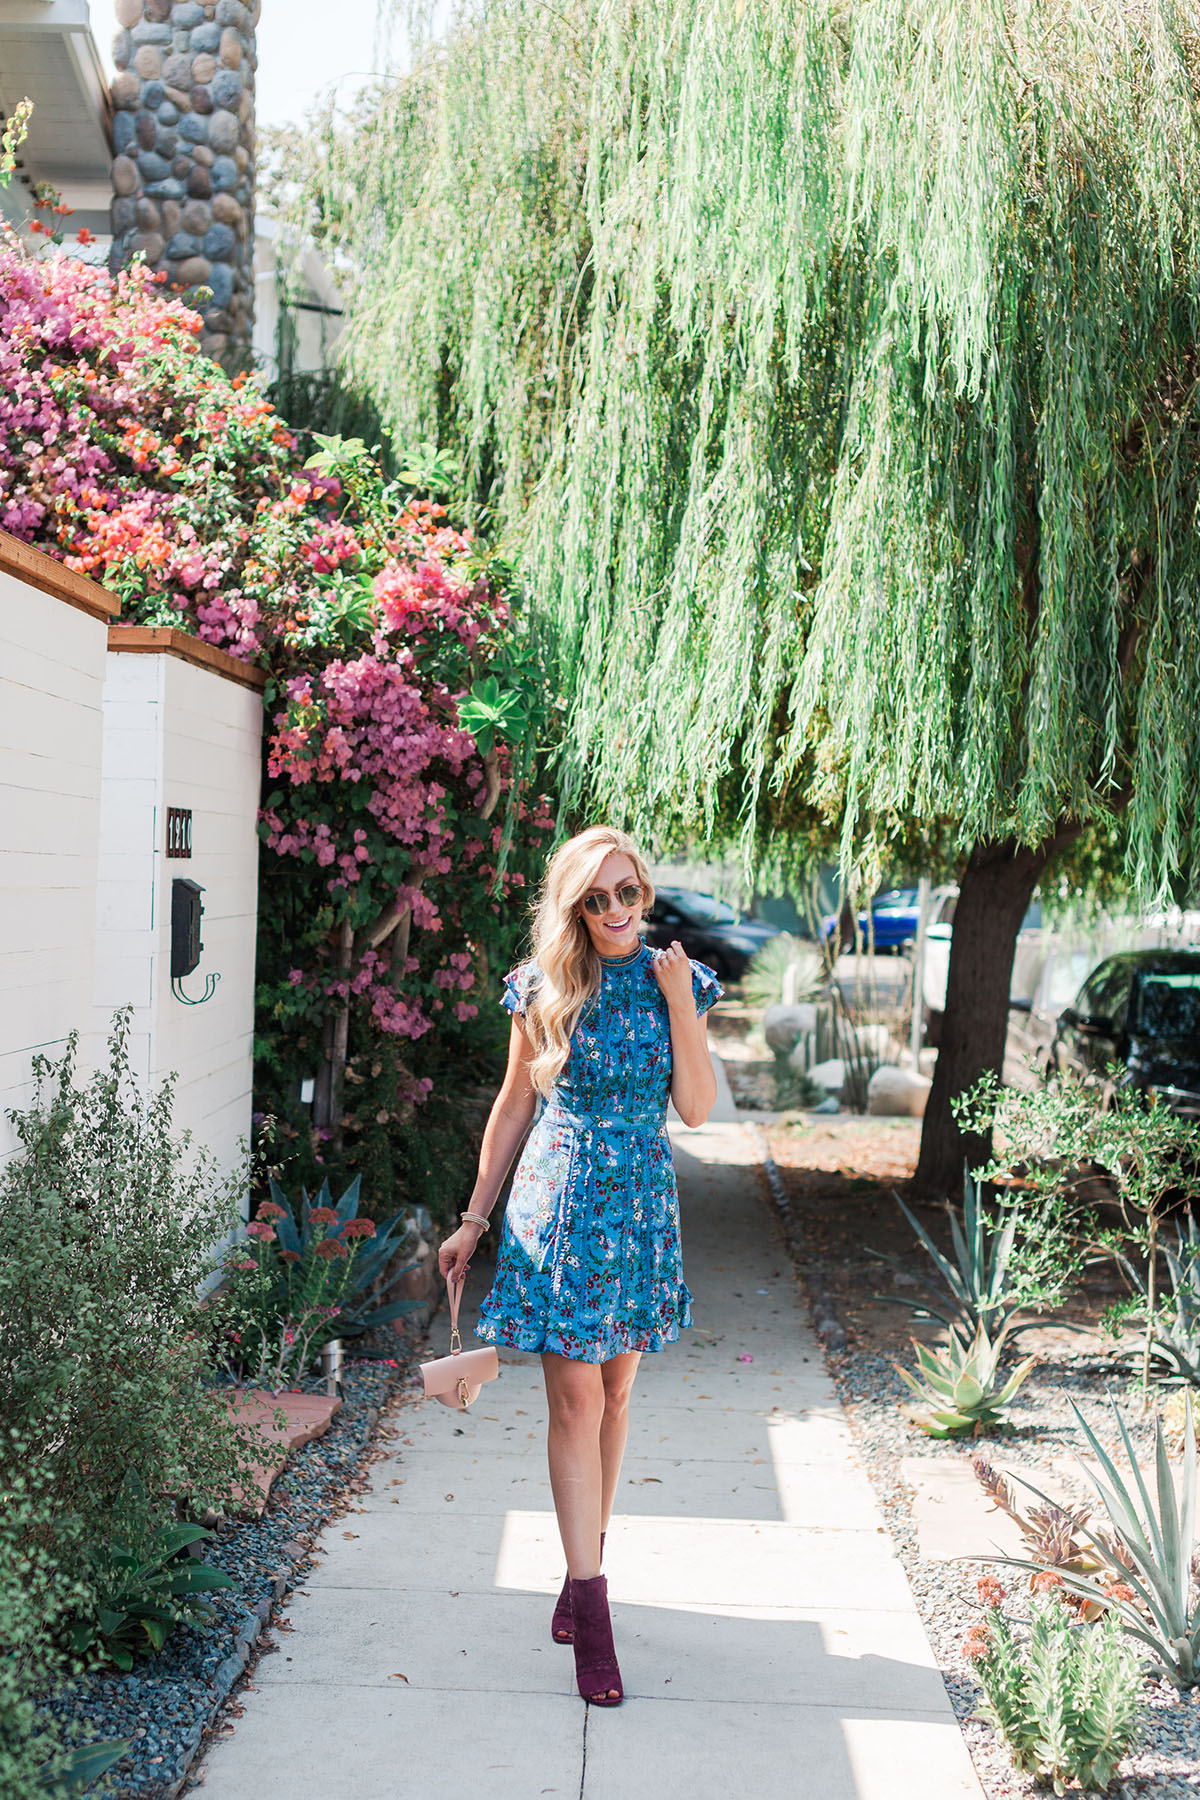 Fall Cocktail Dress | Fall Outfit Ideas | Alice & Olivia Saks Friends and Family Sale